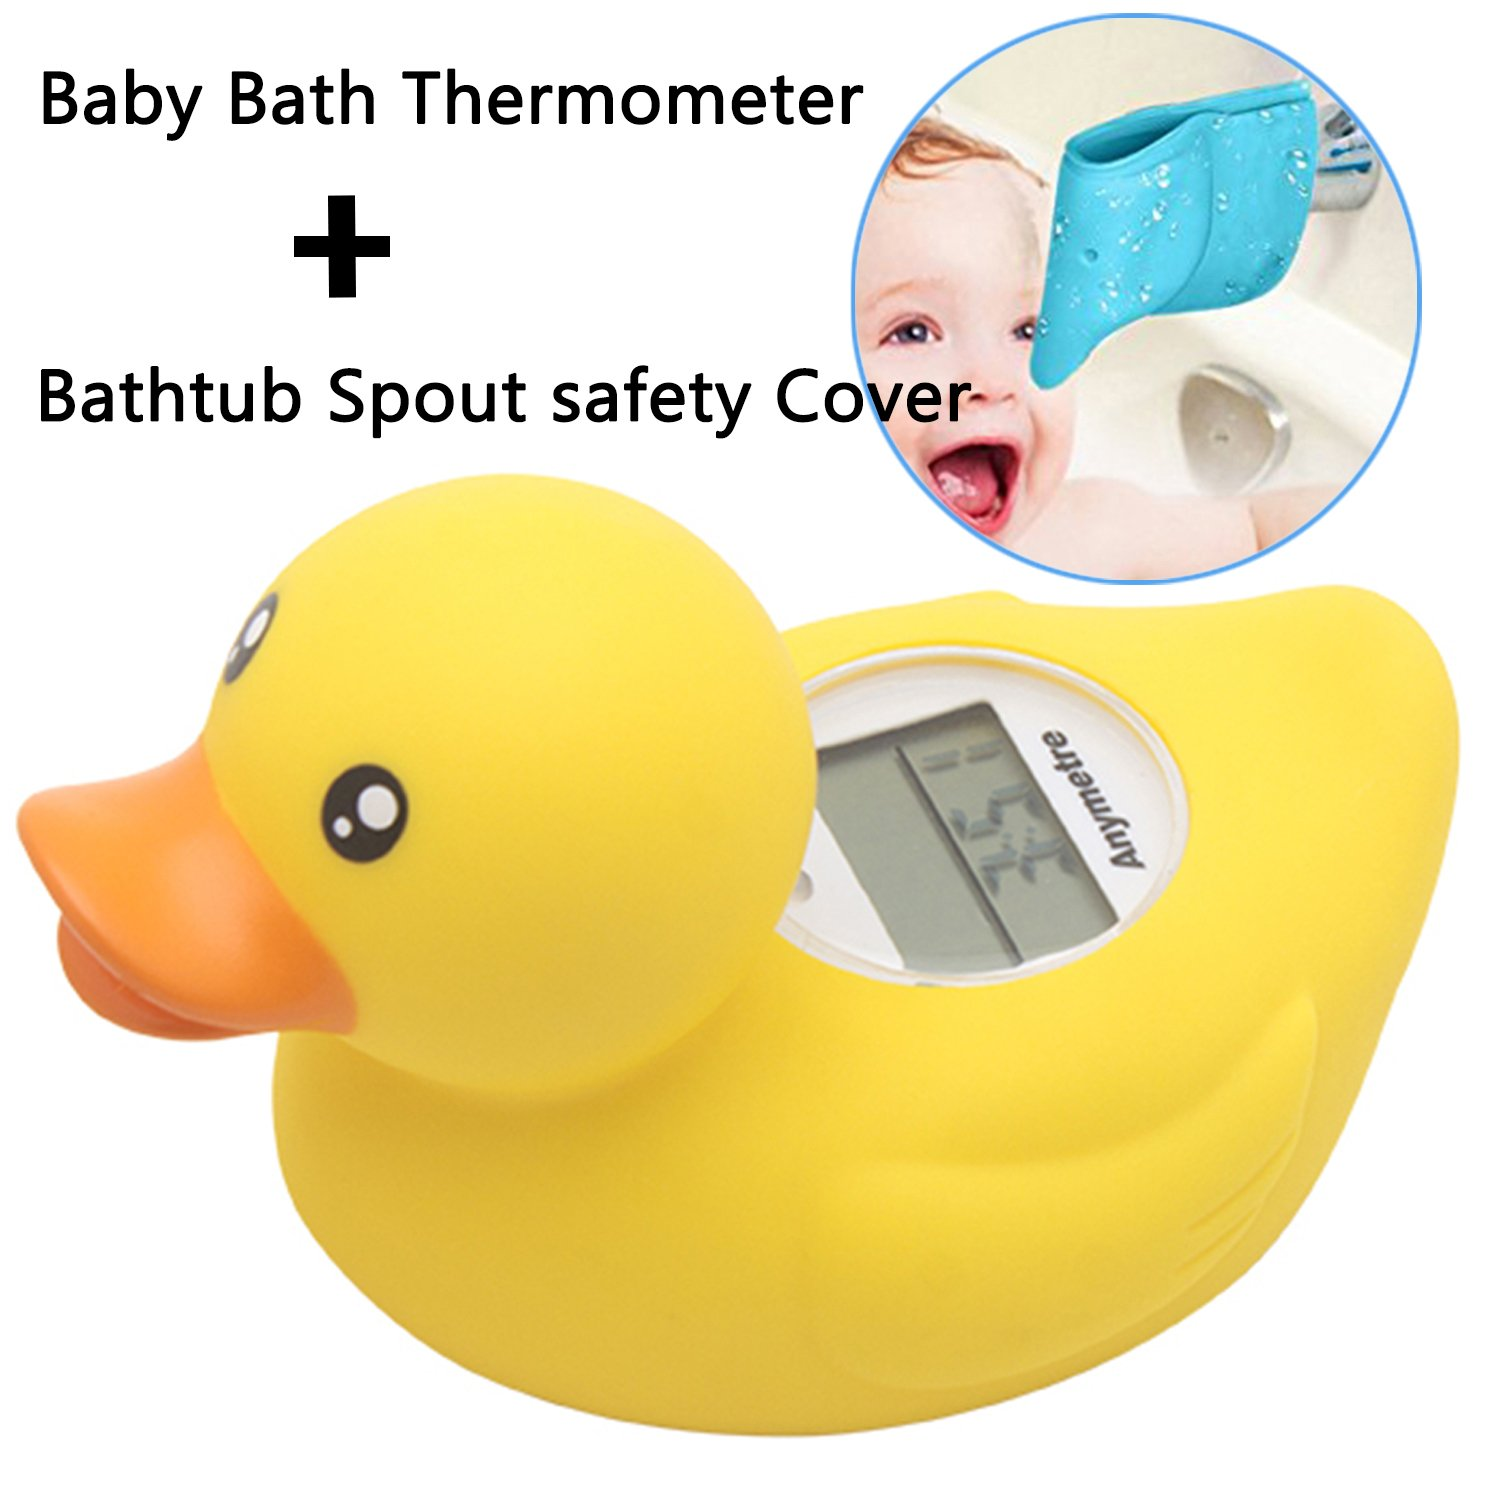 Amazon.com : Baby Bath Thermometer and Bath Spout Cover, Tub Faucet ...